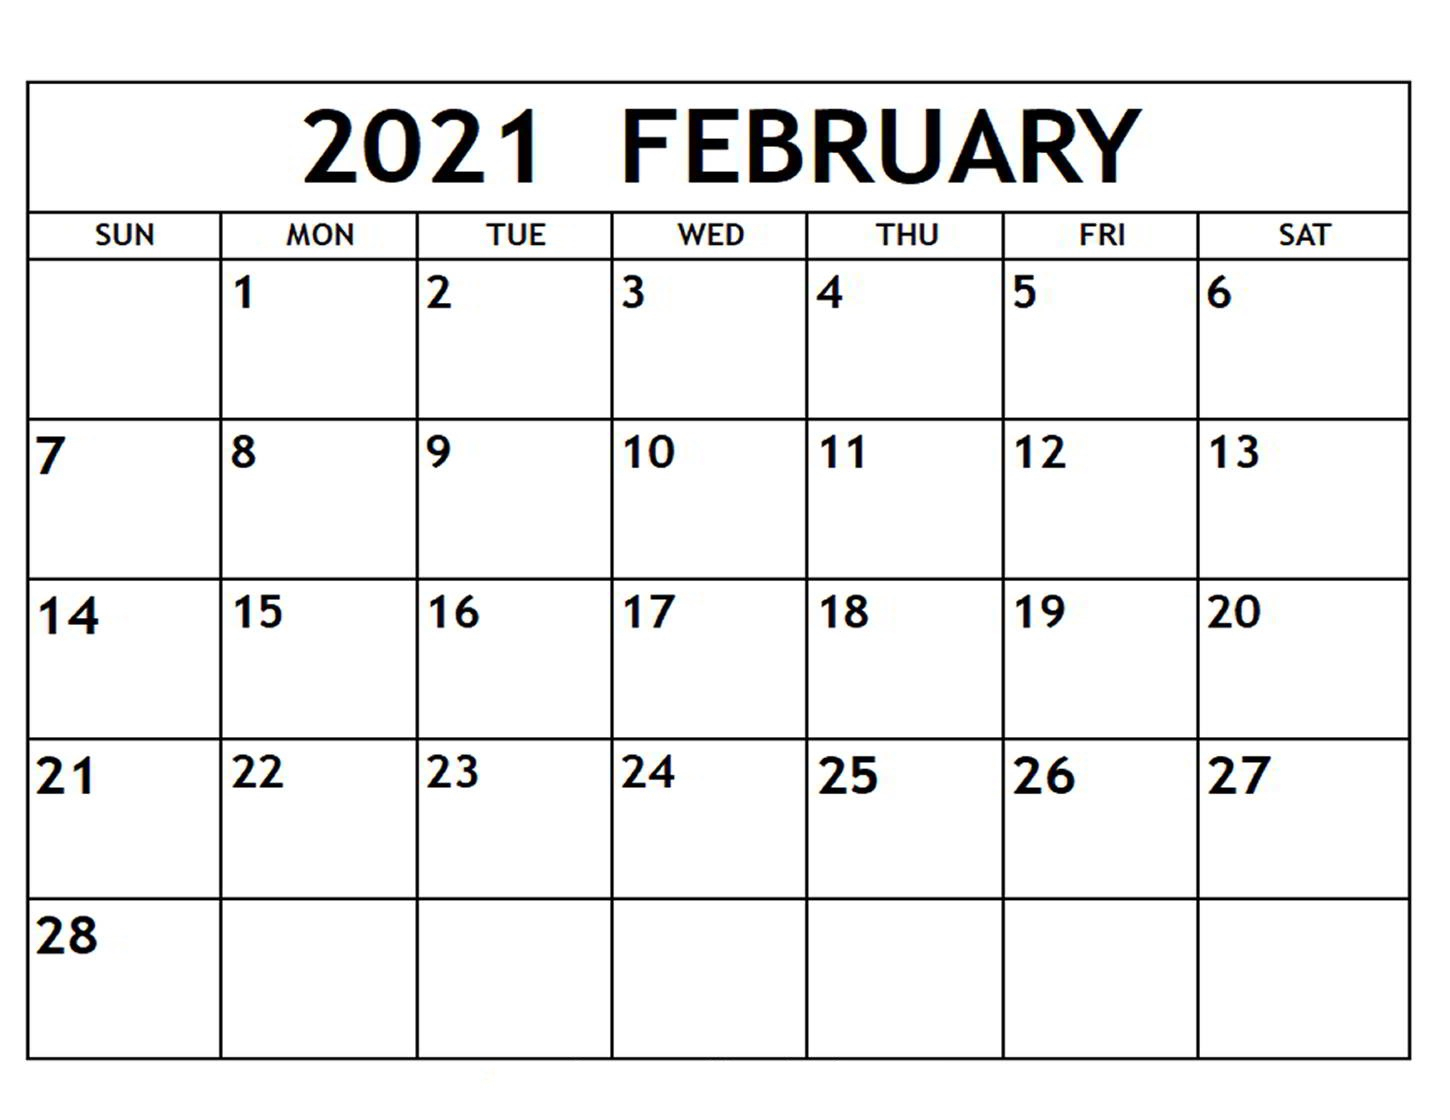 February 2021 Calendar Printable With Holidays - Free within Fill In Calendar 2021